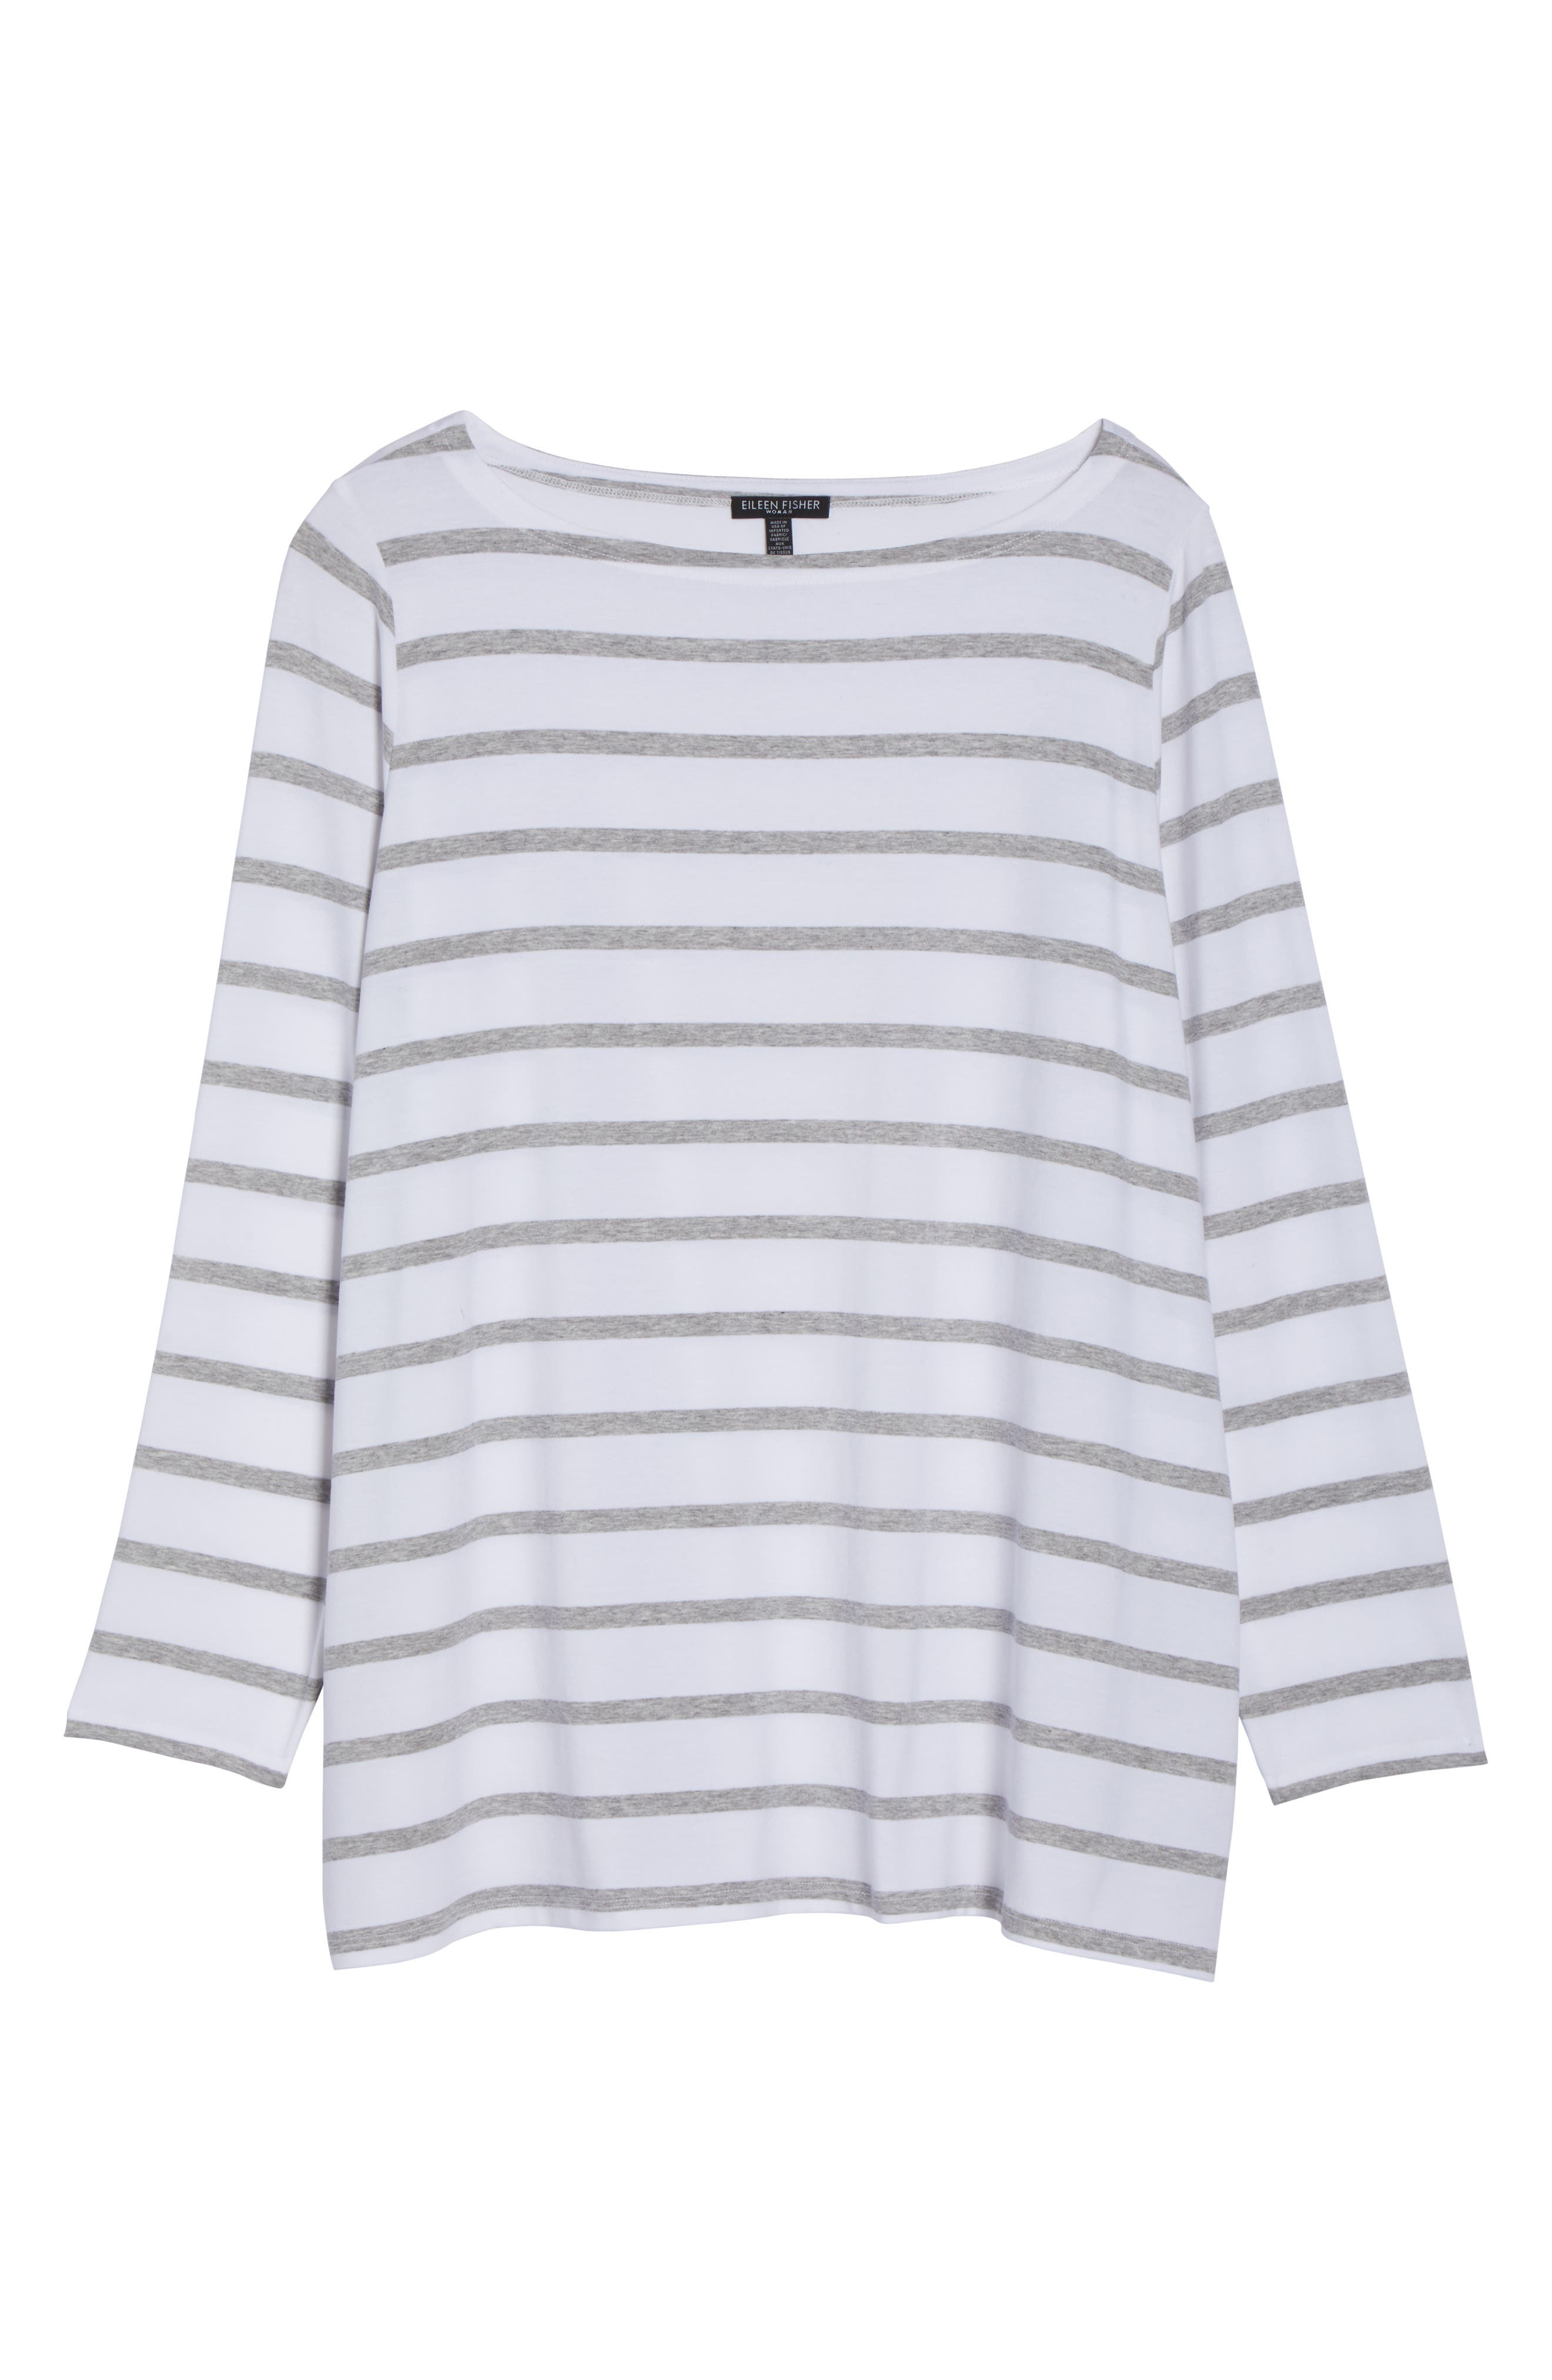 Stripe Stretch Tencel<sup>®</sup> Lyocell Top,                             Alternate thumbnail 7, color,                             White/ Dark Pearl